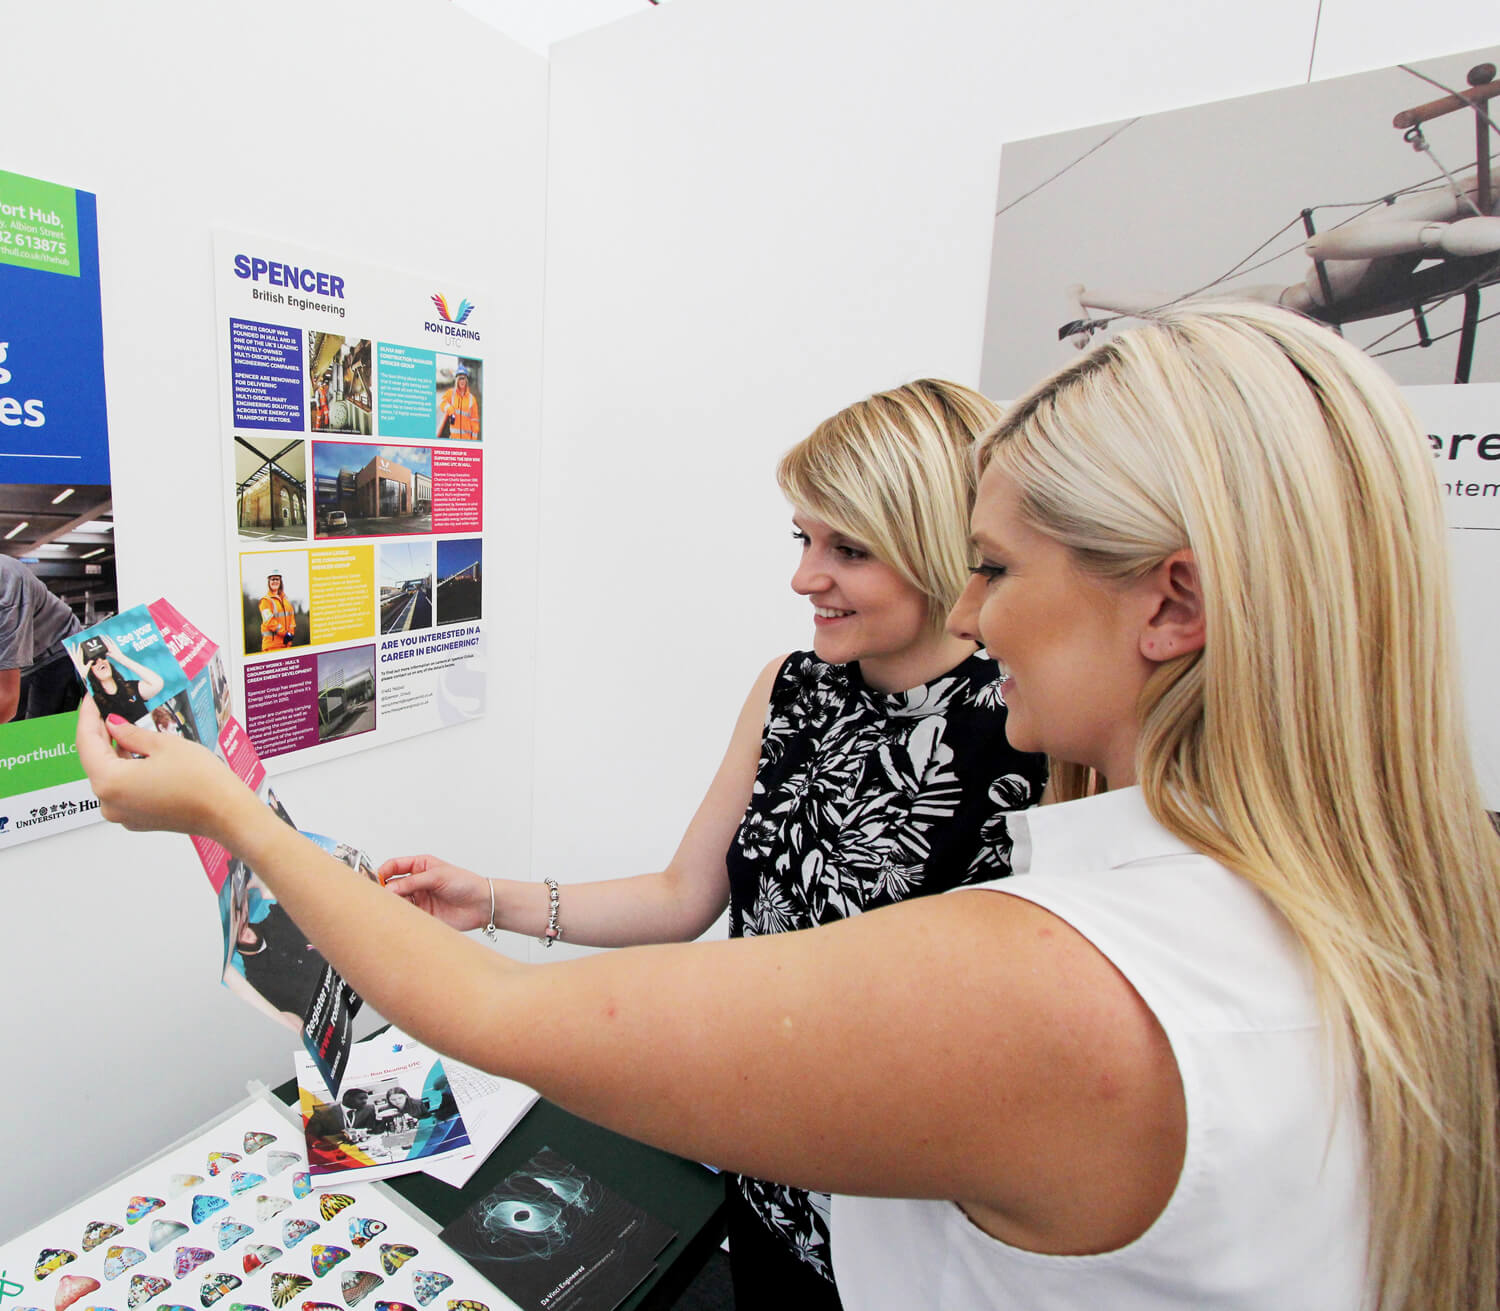 Spencer Group employees Sophie Farren and Claire Ransom at the Da Vinci Engineered Exhibition, Amy Johnson Festival